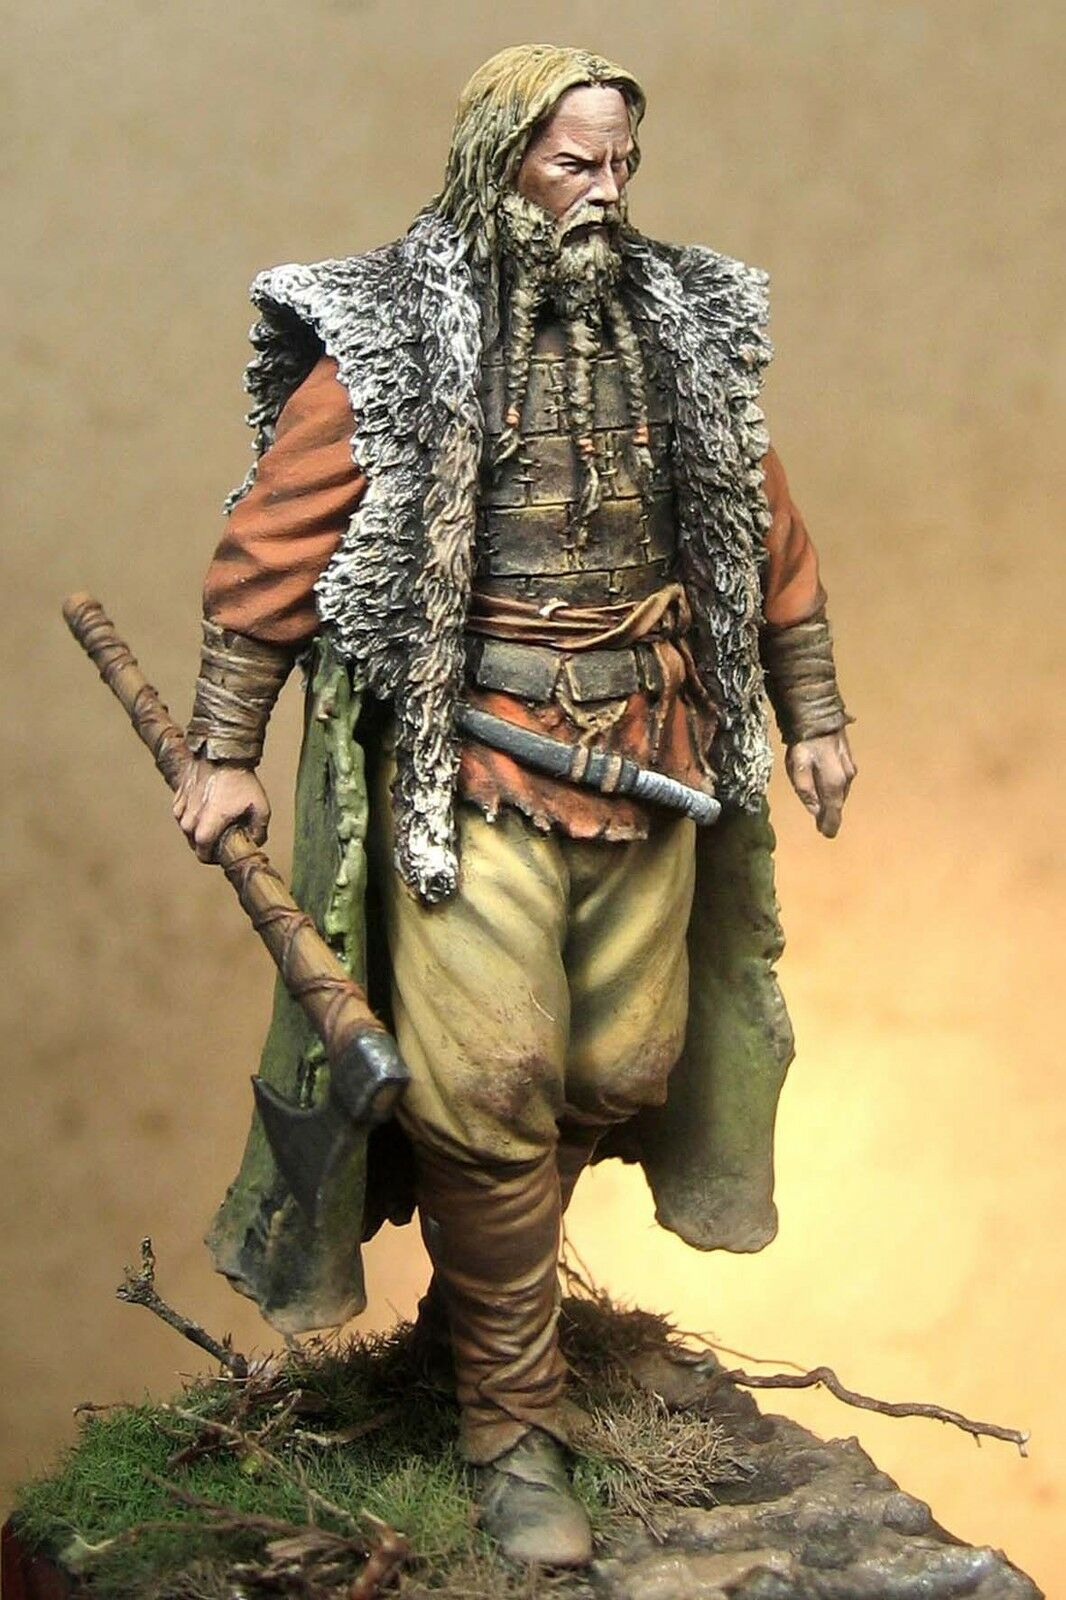 Art Girona Norseman Viking Warrior 70mm Unpainted kit Raul LATORRE